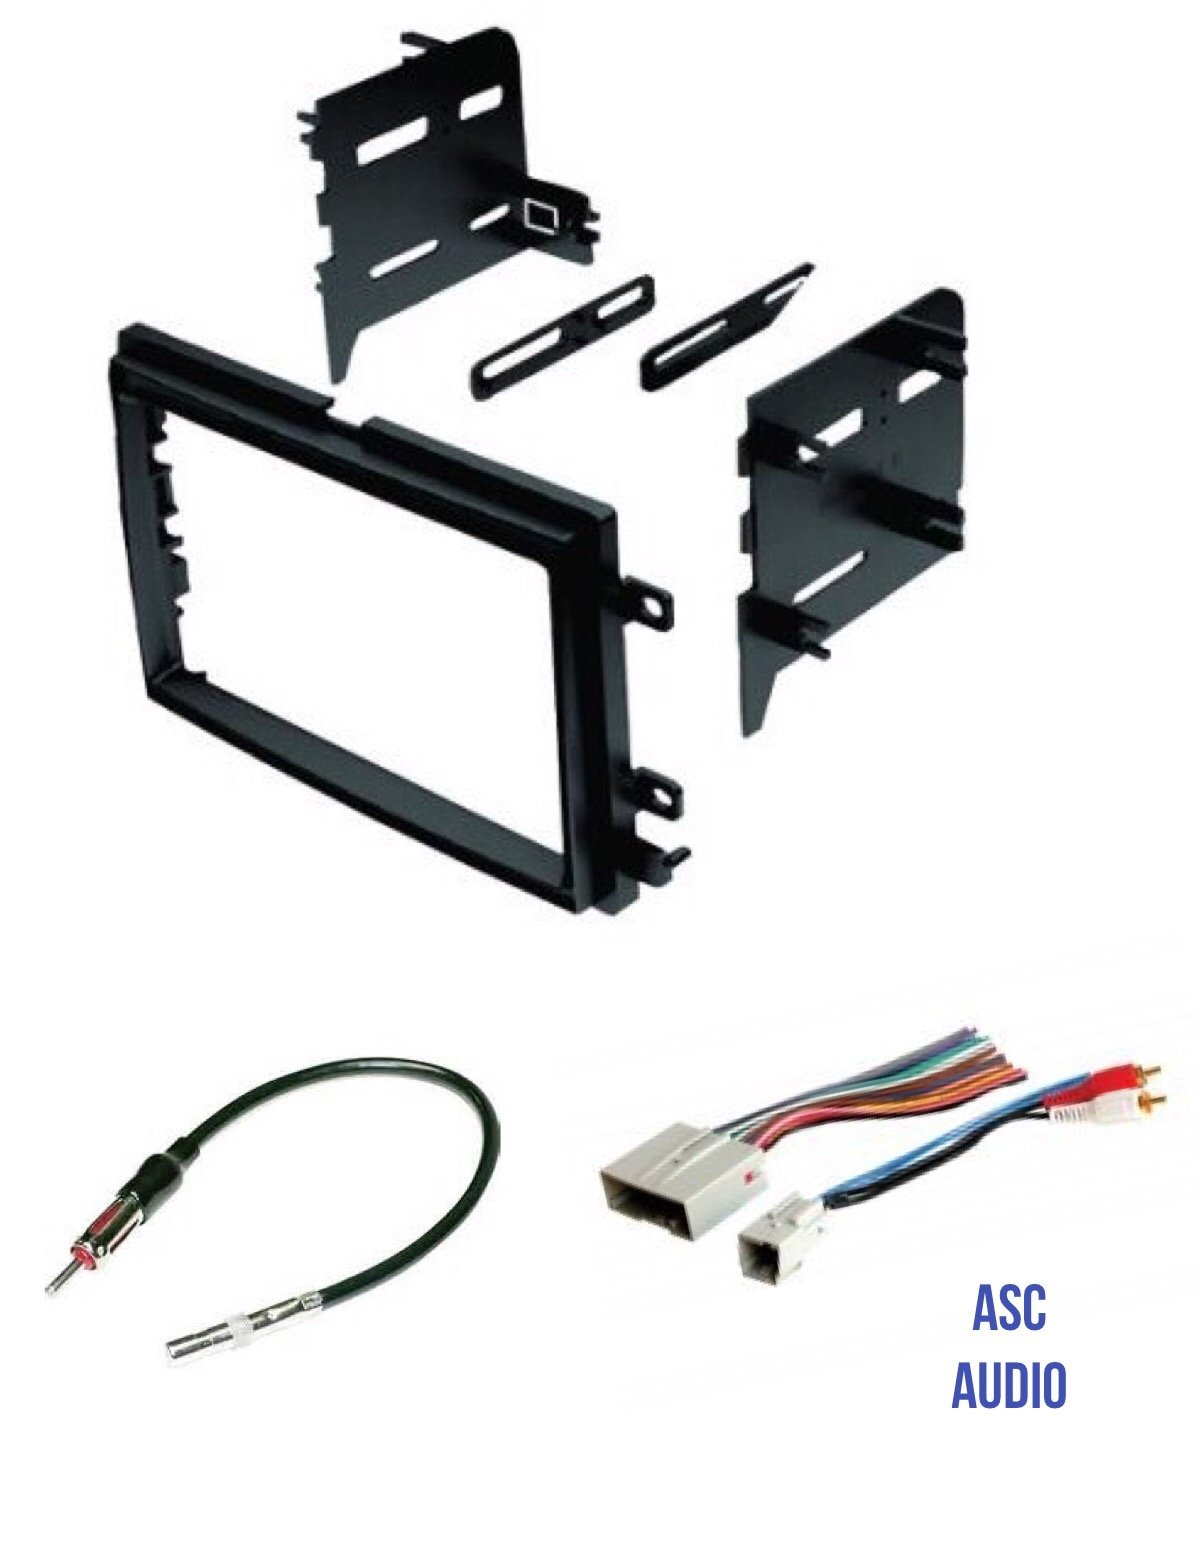 ASC Audio Car Stereo Radio Install Dash Kit, Wire Harness, and Antenna  Adapter to